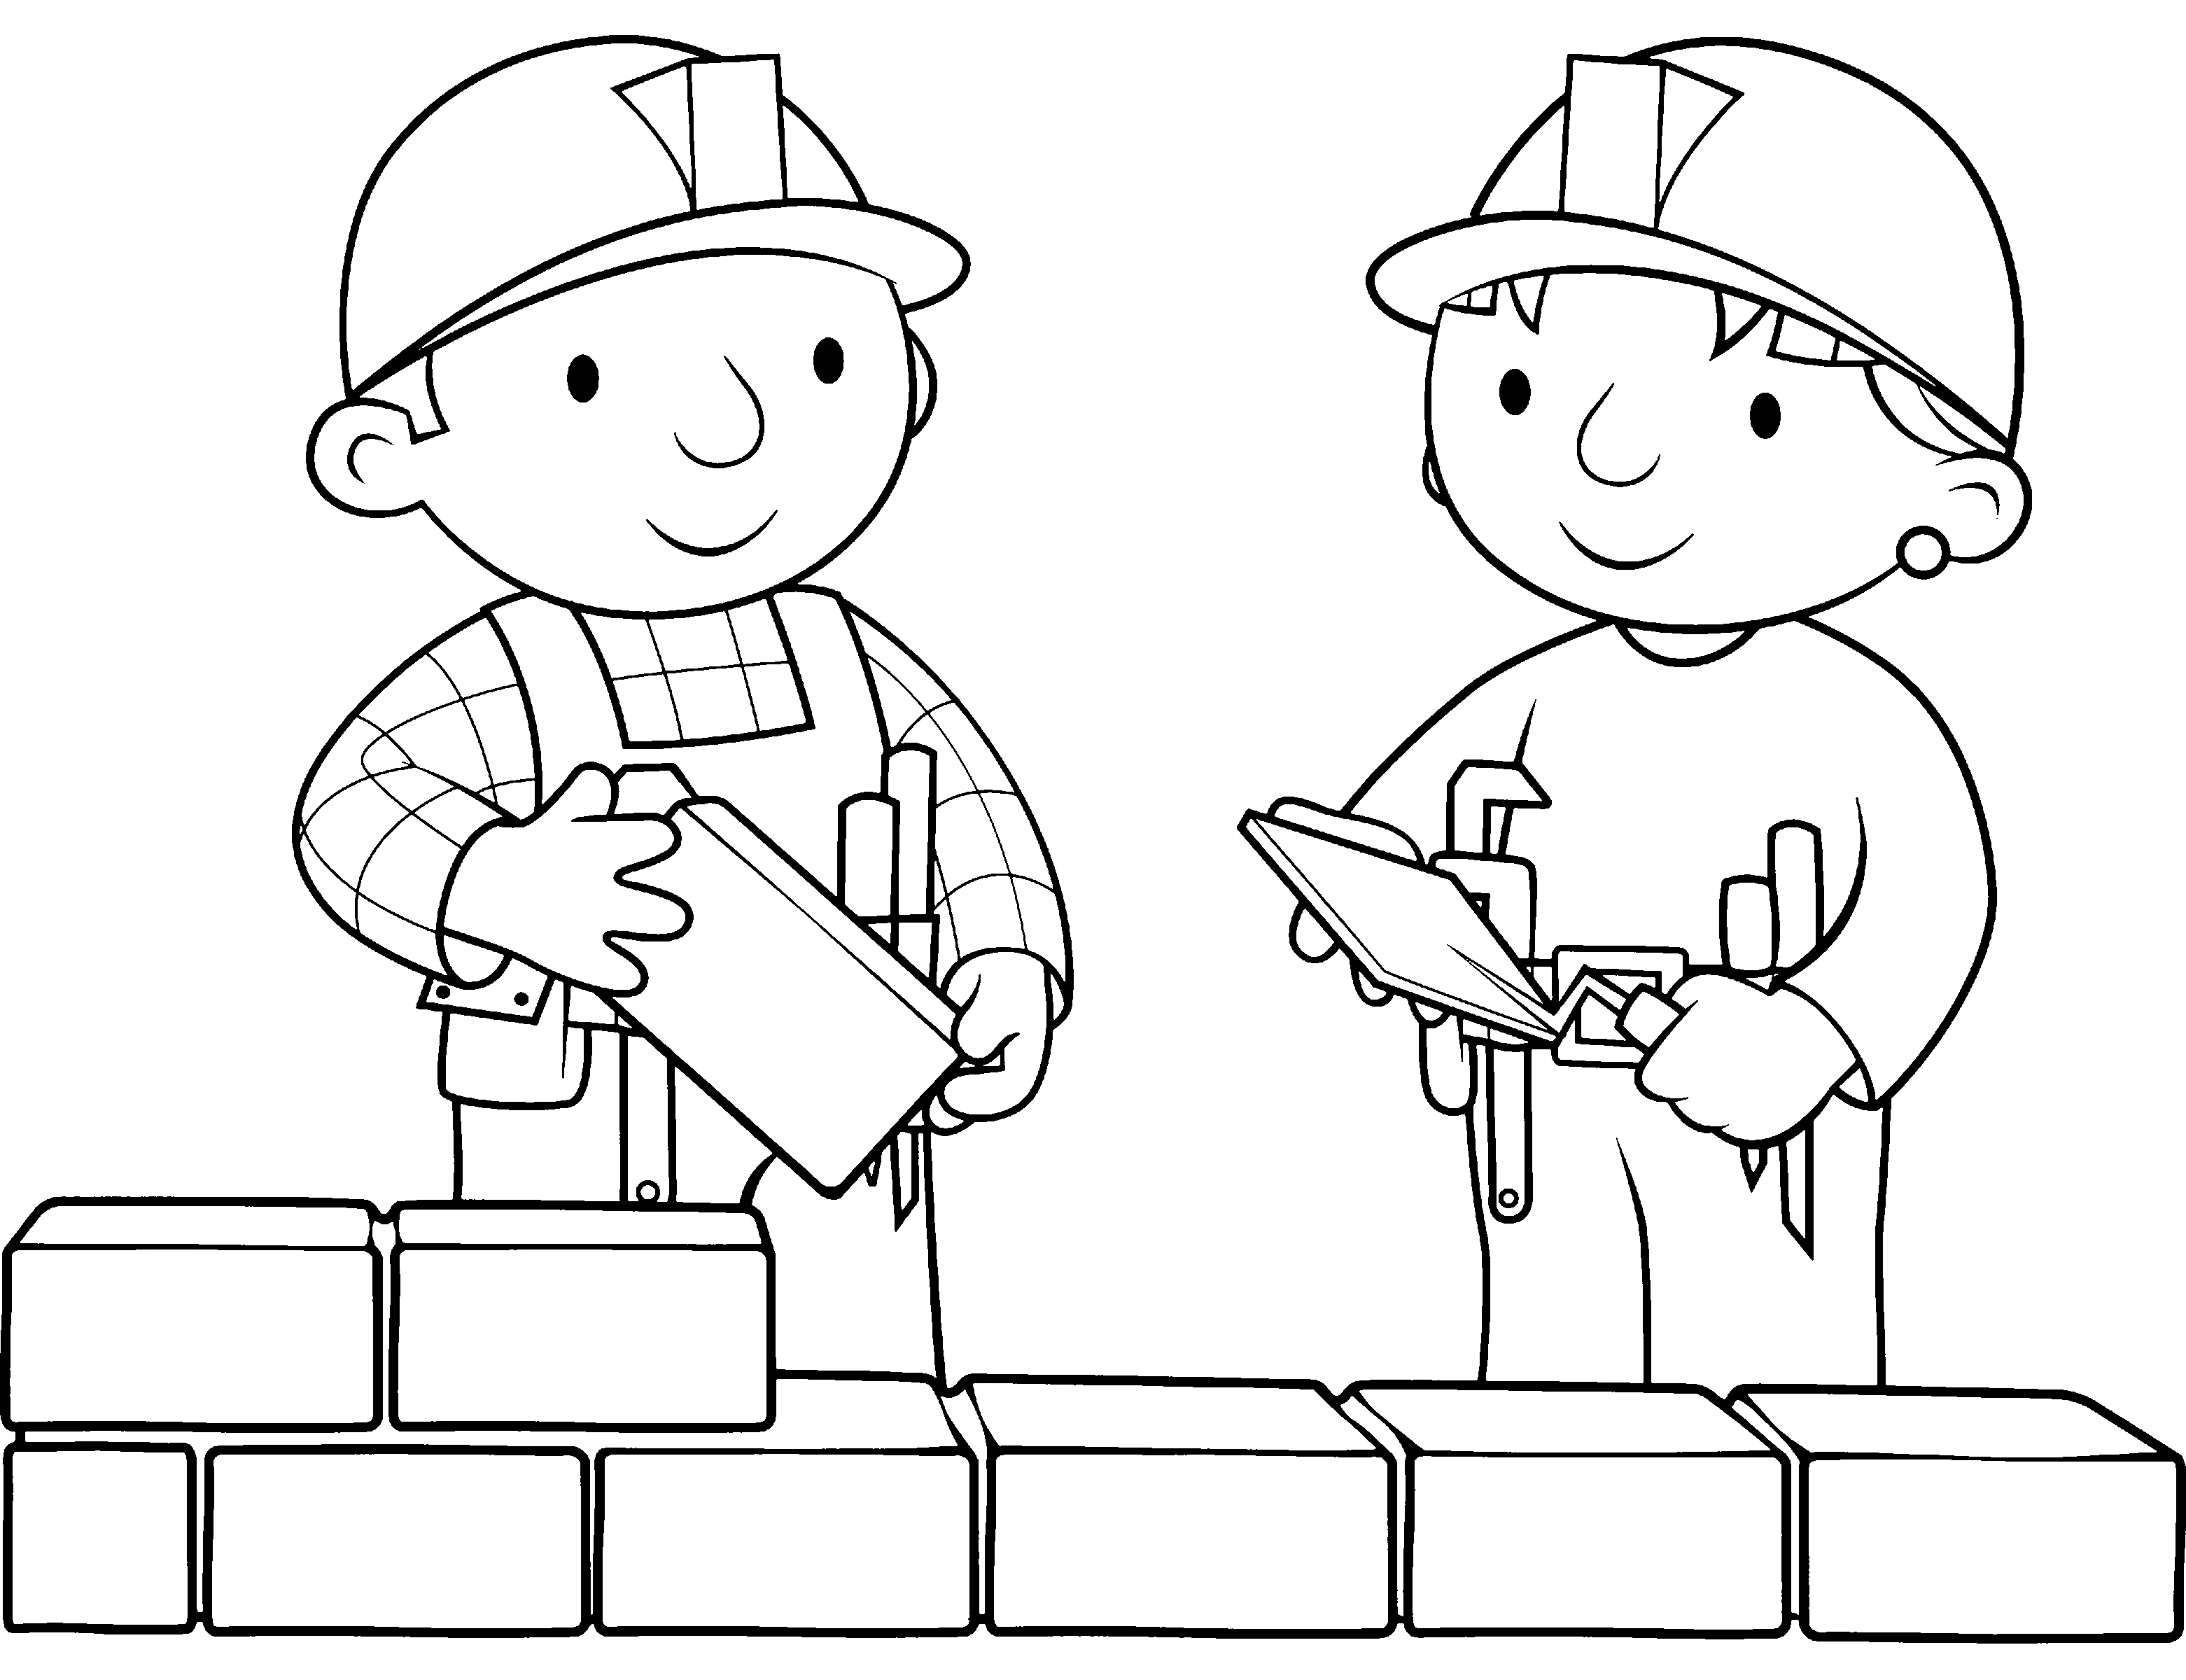 Printable Bob the Builder Coloring Pages Coloring Me